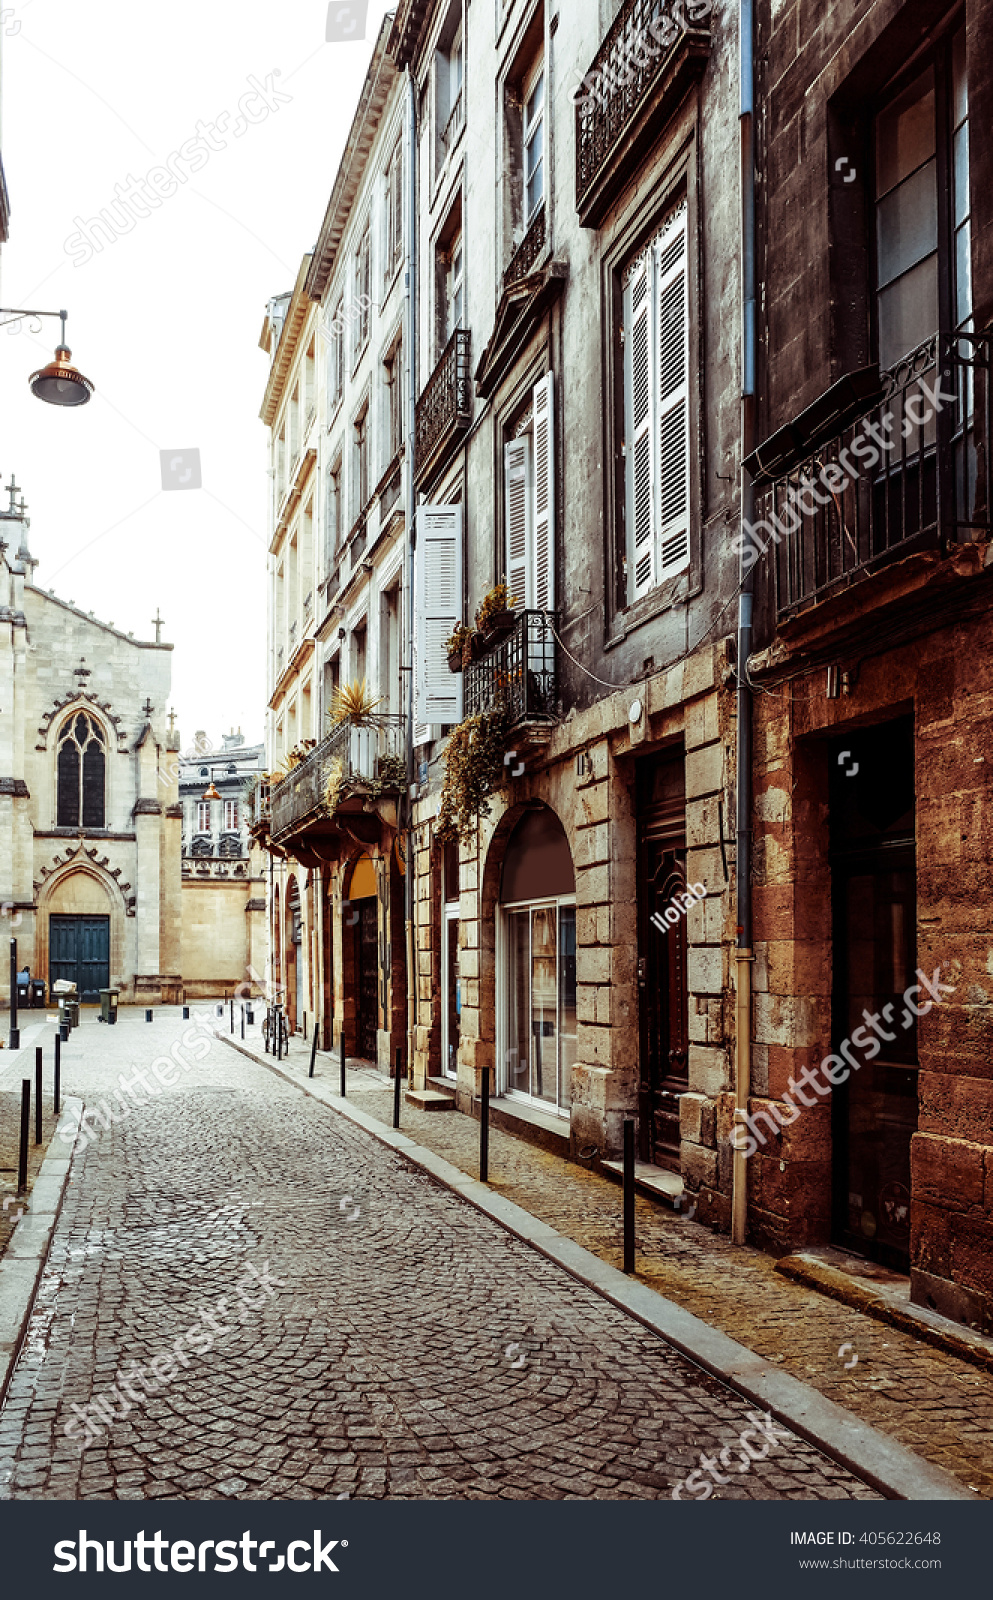 street view old town bordeaux city stock photo 405622648 shutterstock. Black Bedroom Furniture Sets. Home Design Ideas